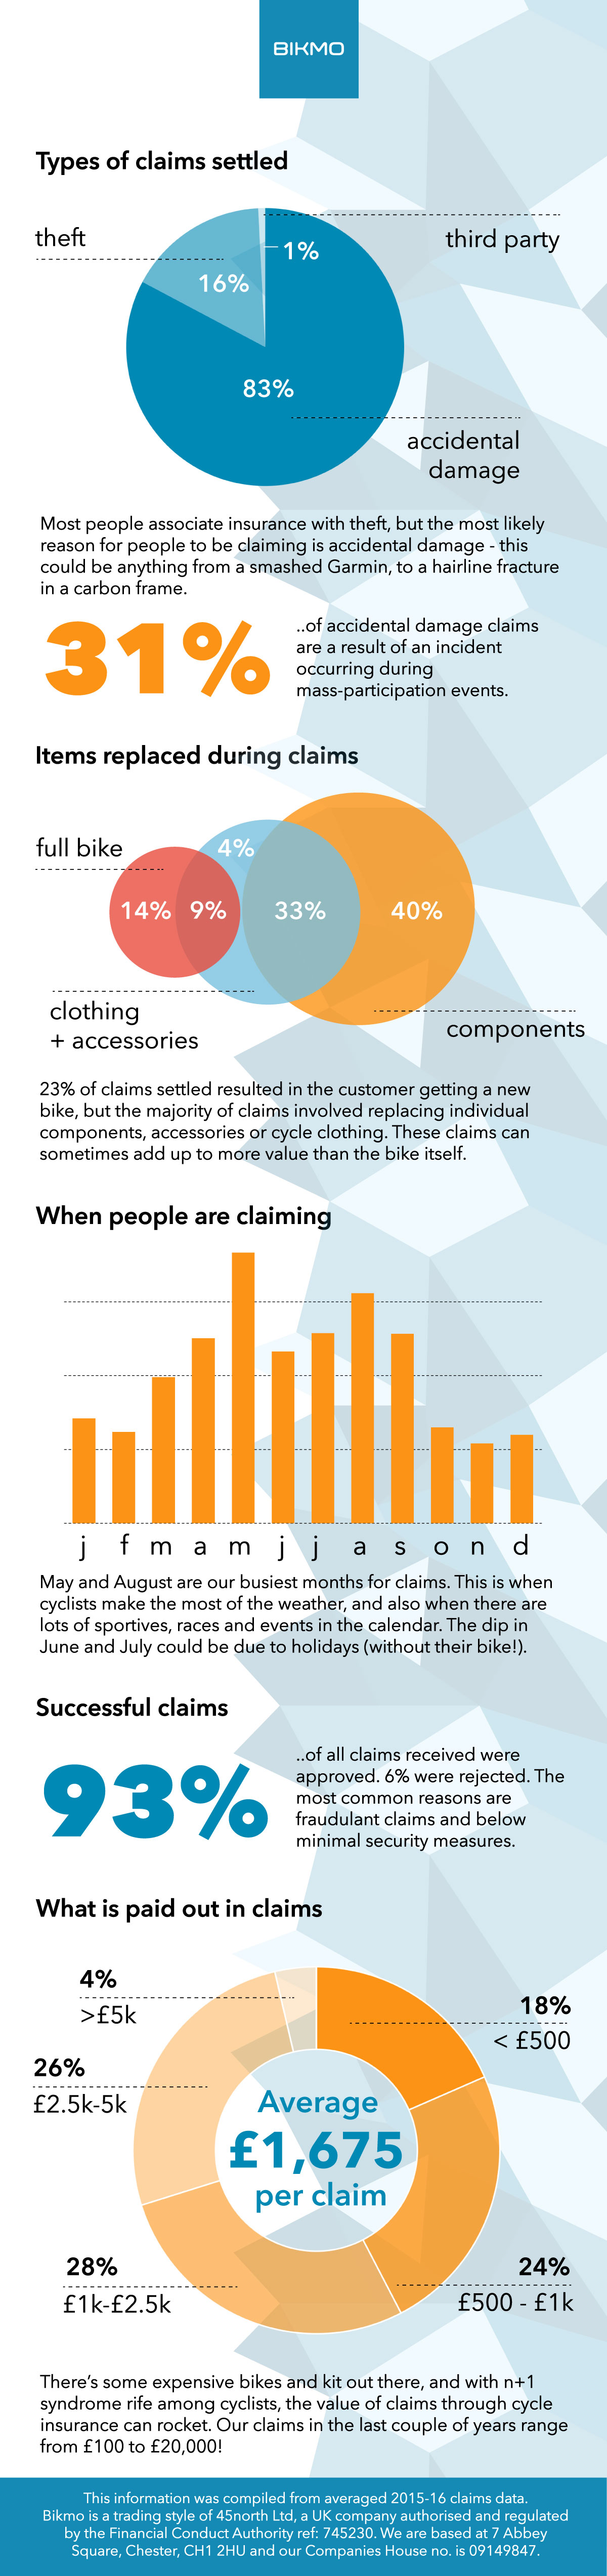 93 Per Cent Of Cycle Insurance Claims Are Accepted Says Bikmo Bicycle Business Bikebiz Insurance Claim Cycle Sayings